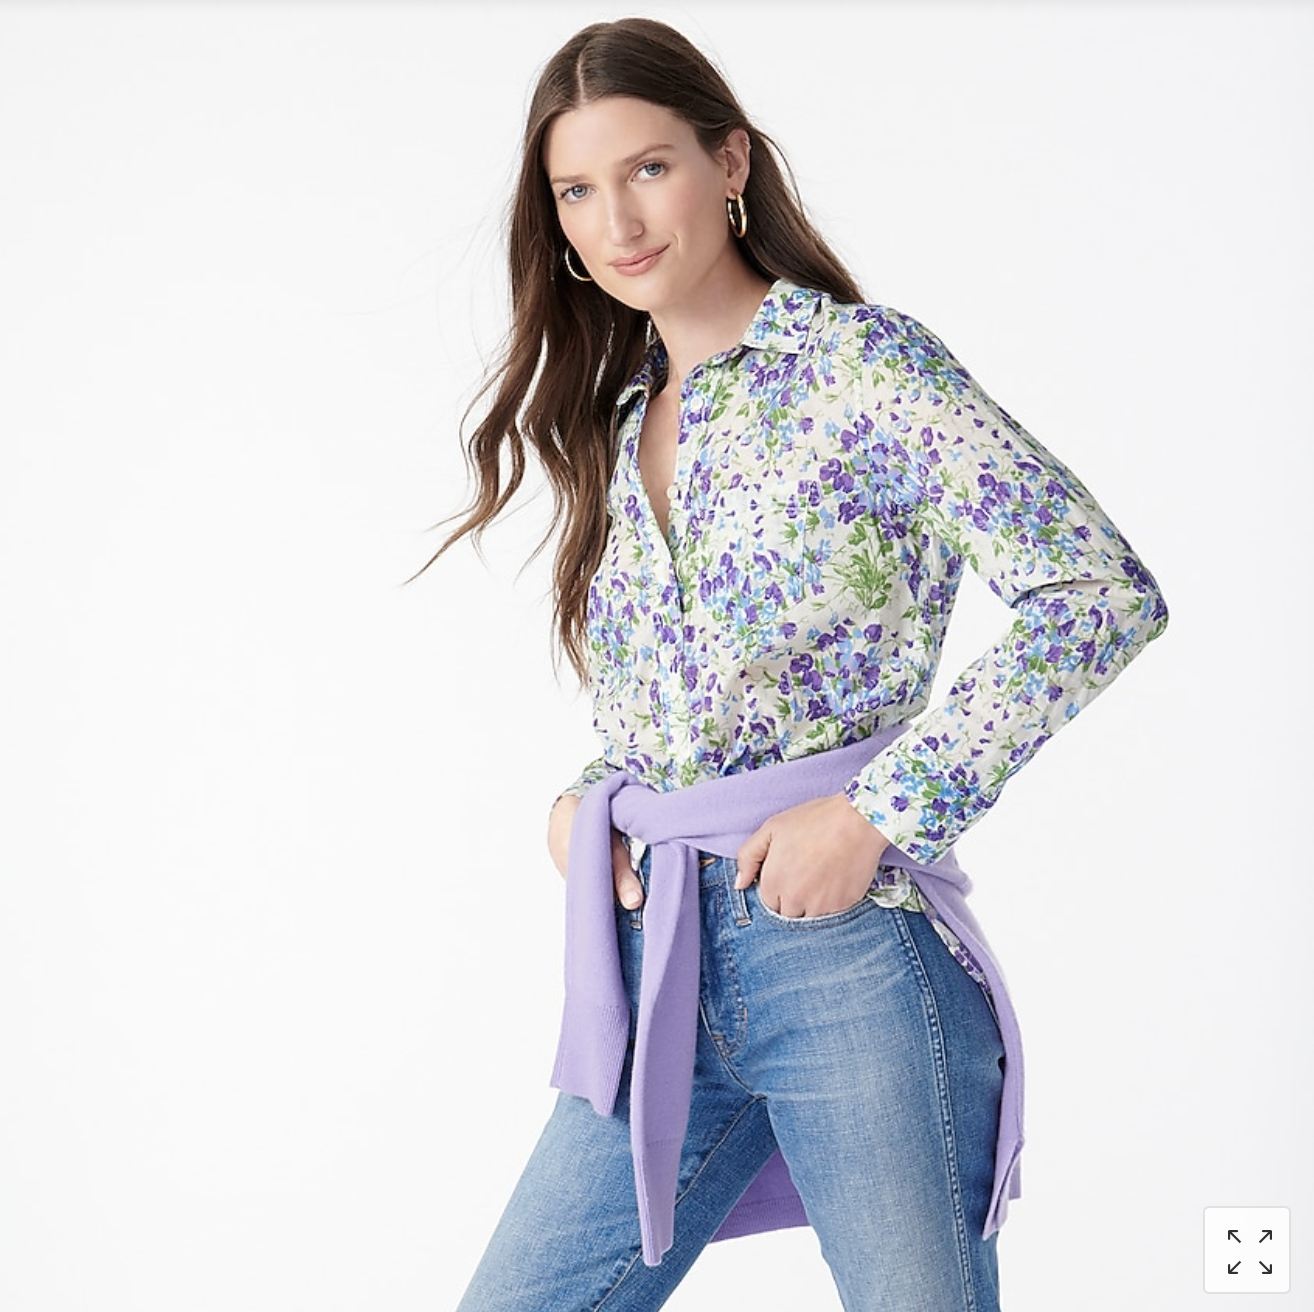 J.Crew: Up to 70% off sale!